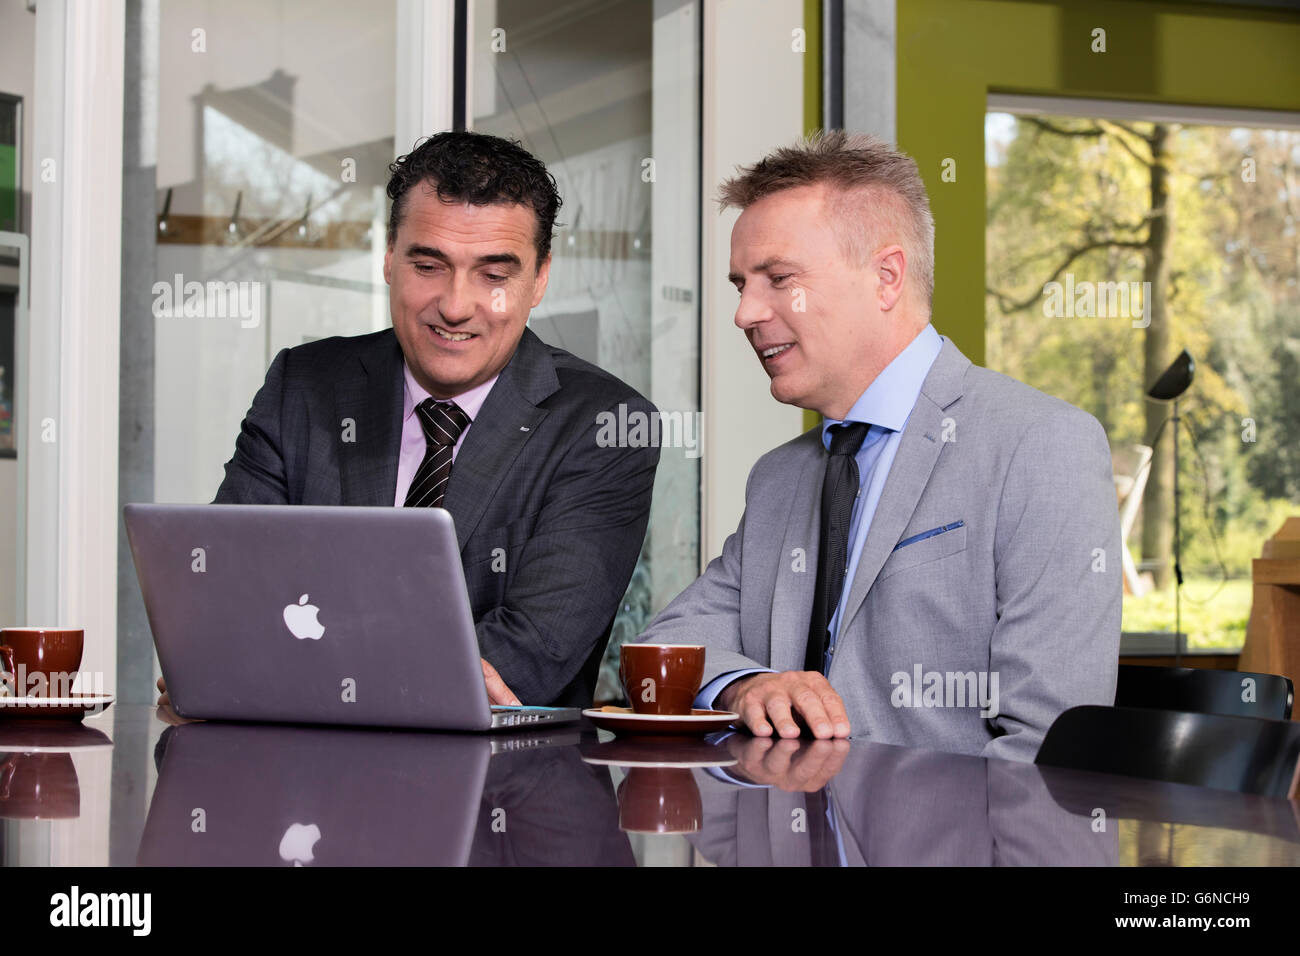 Confident and successful business partners brainstorming ideas in a large cooperate modern office, could also be - Stock Image